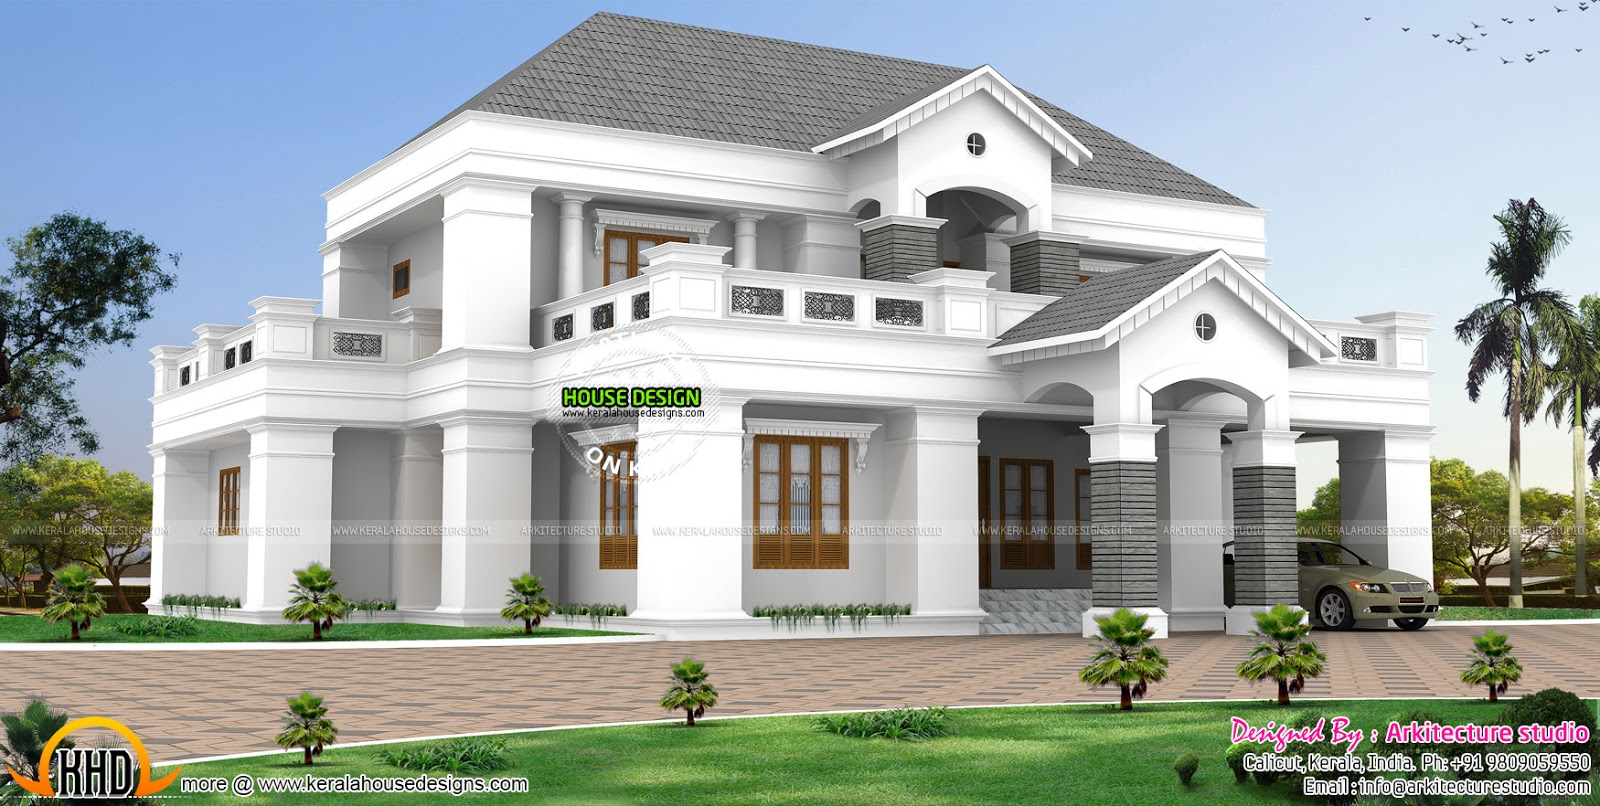 Luxurious pillar type home design kerala home design and for Architecture house design ideas